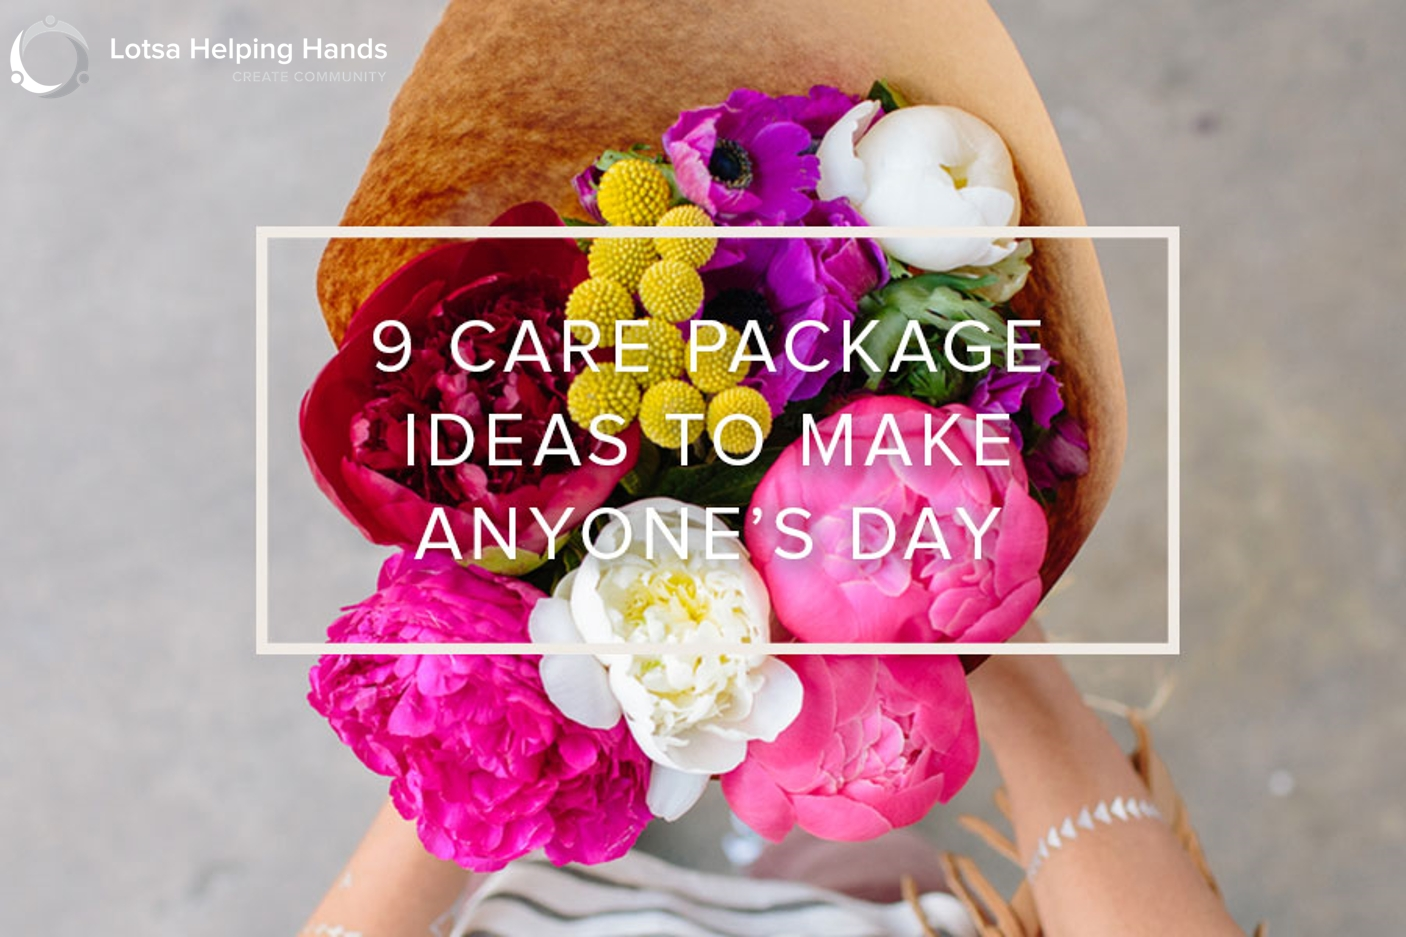 10 Lovable Care Package Ideas For Cancer Patients 9 care package ideas to make anyones day lotsa helping hands 2